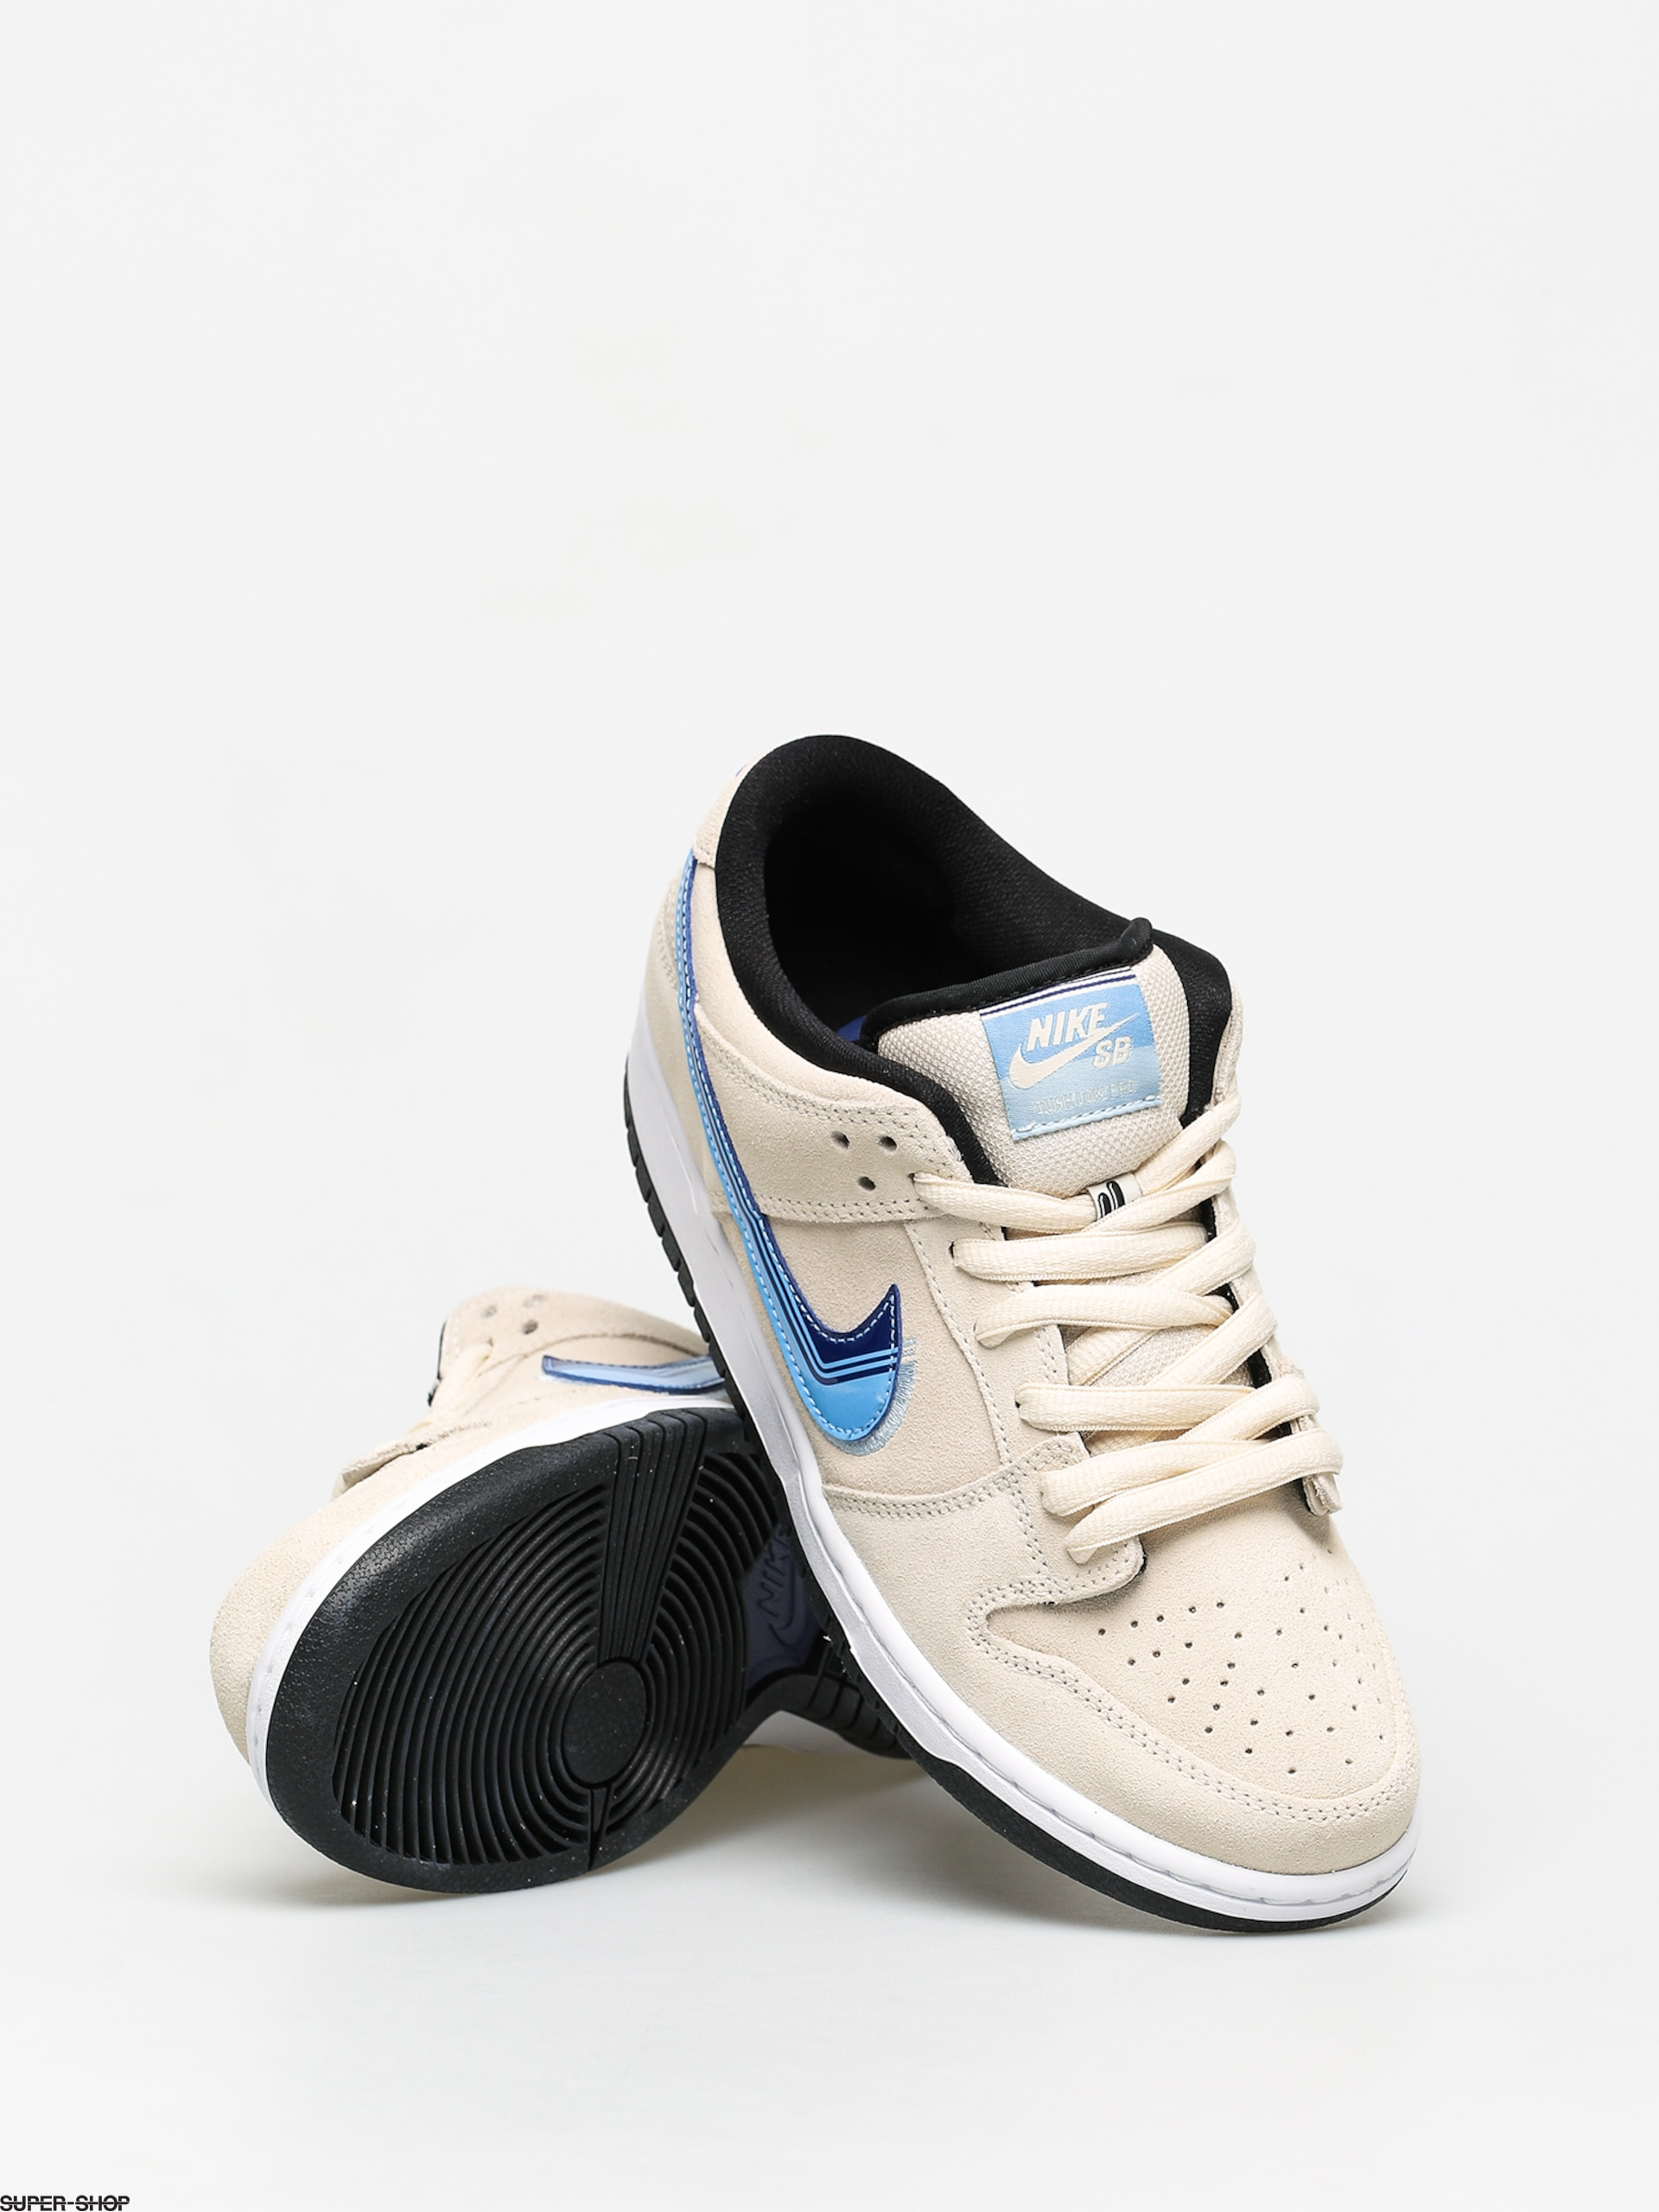 Contratista Himno descuento  Nike SB Dunk Low Pro Shoes (light cream/deep royal blue)